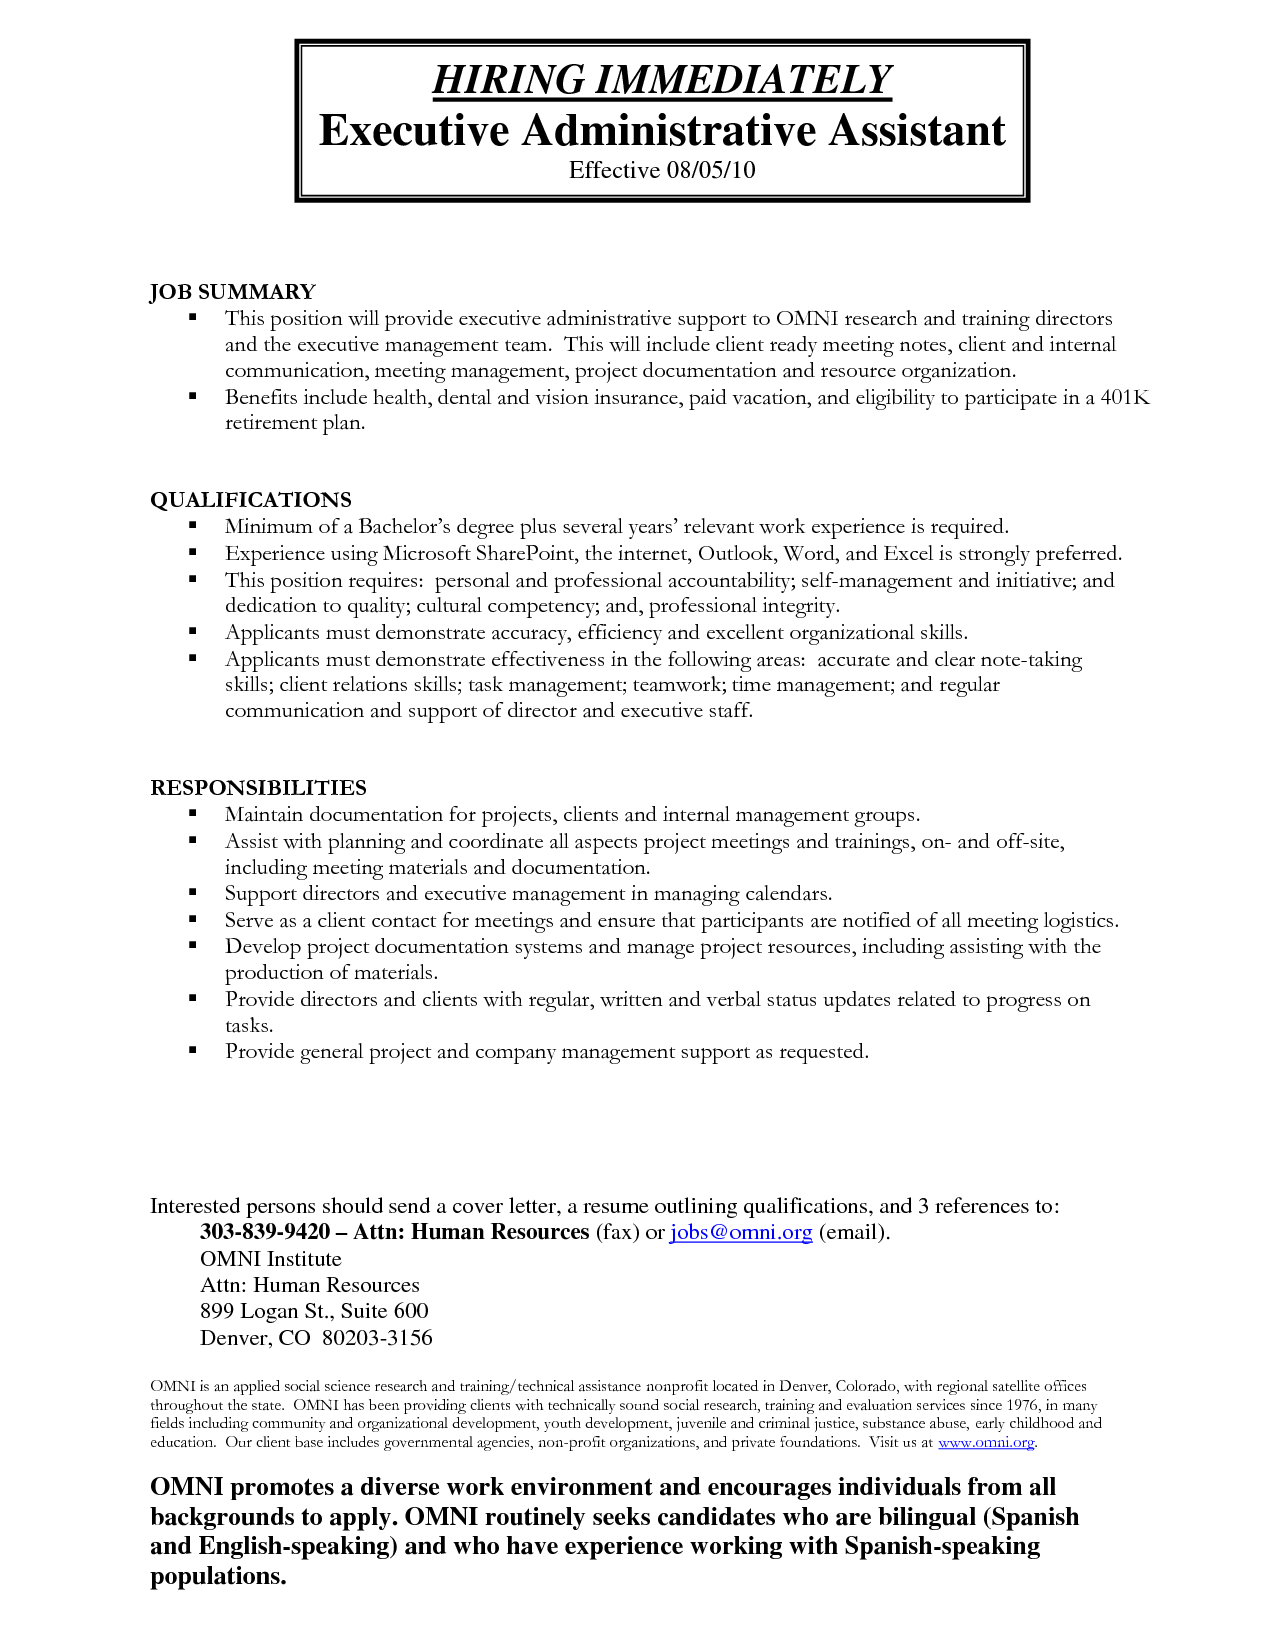 administrative assistant duties construction company sample resume for administrative assistant in construction Examples of Administrative Assistant Resumes